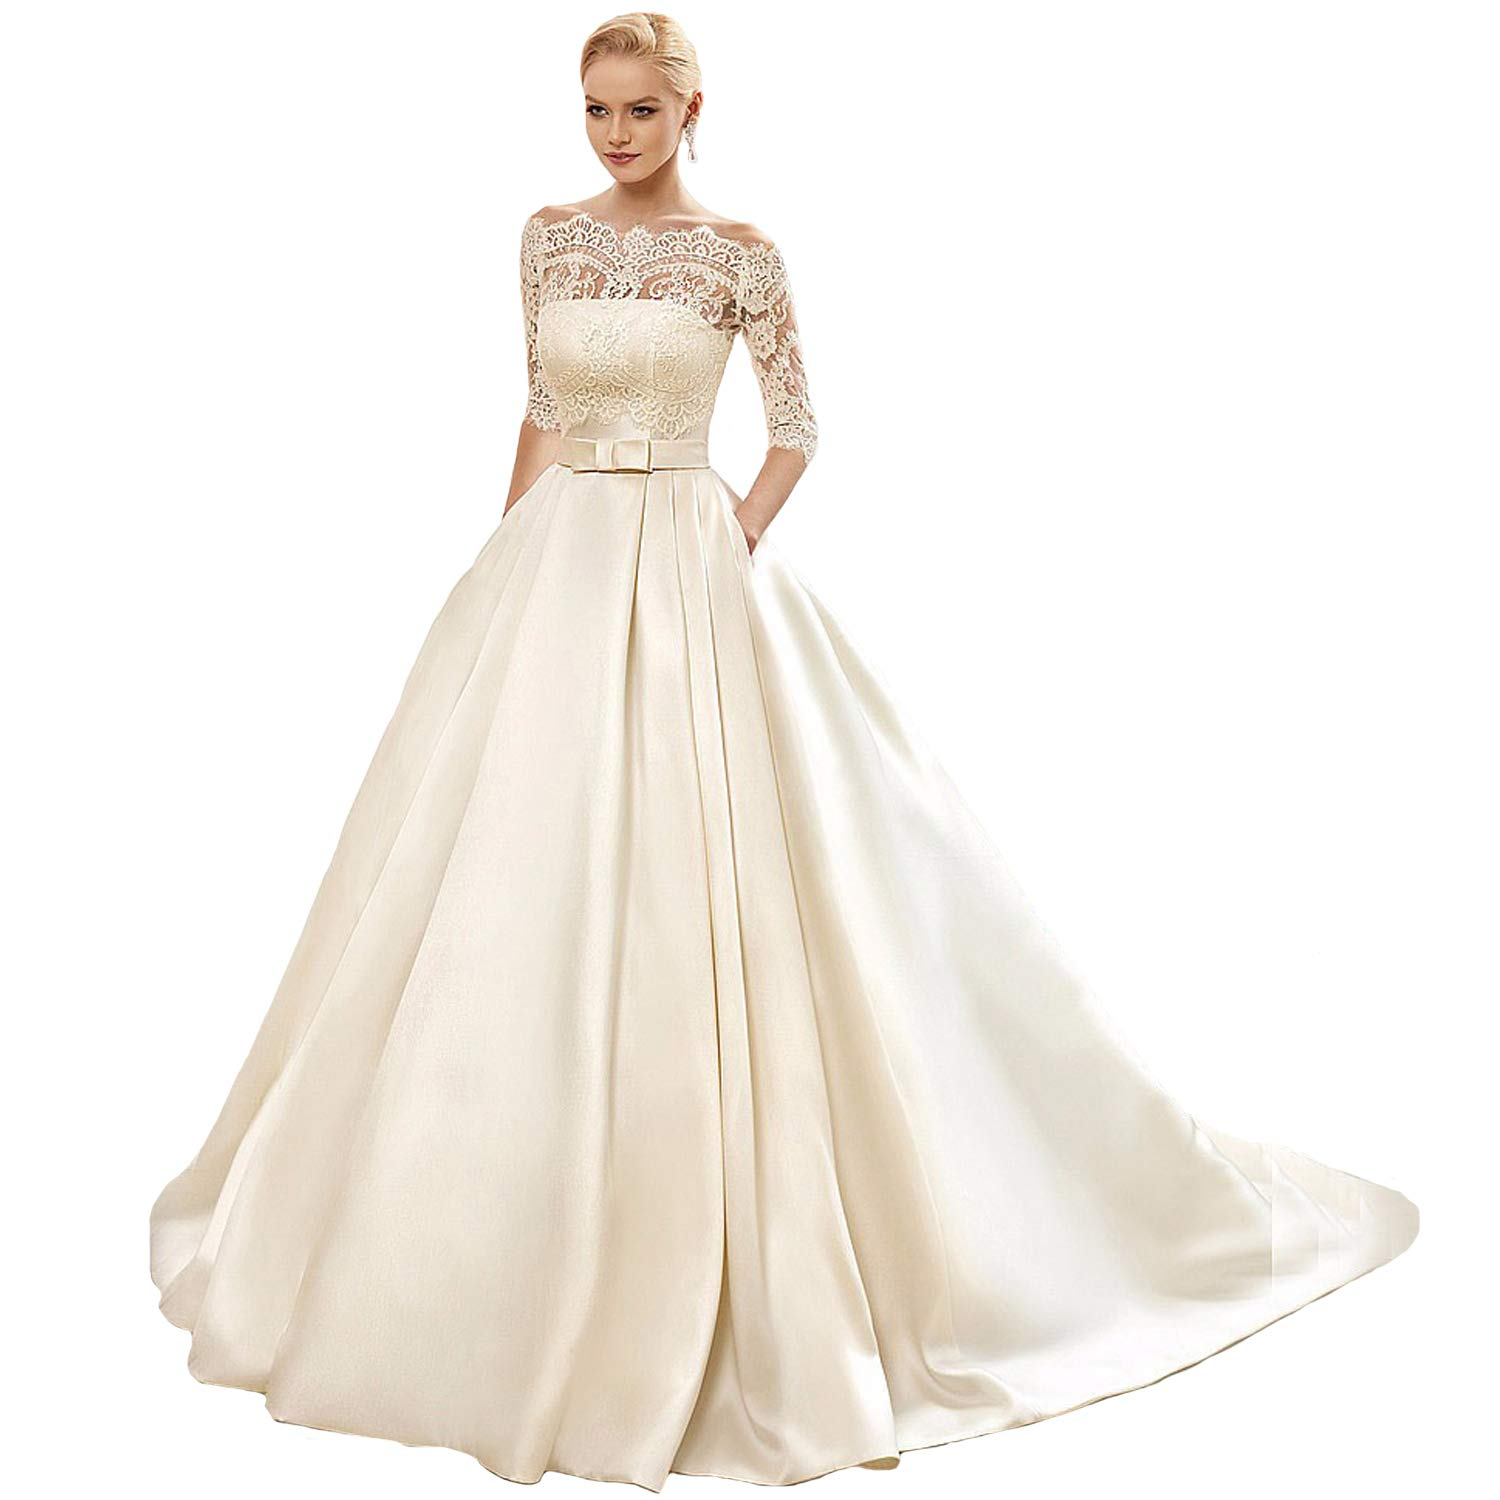 9fb61705af Yuxin Women's Lace Wedding Dress Long 3/4 Sleeves Sweep Train Satin Bridal  Gown at Amazon Women's Clothing store: